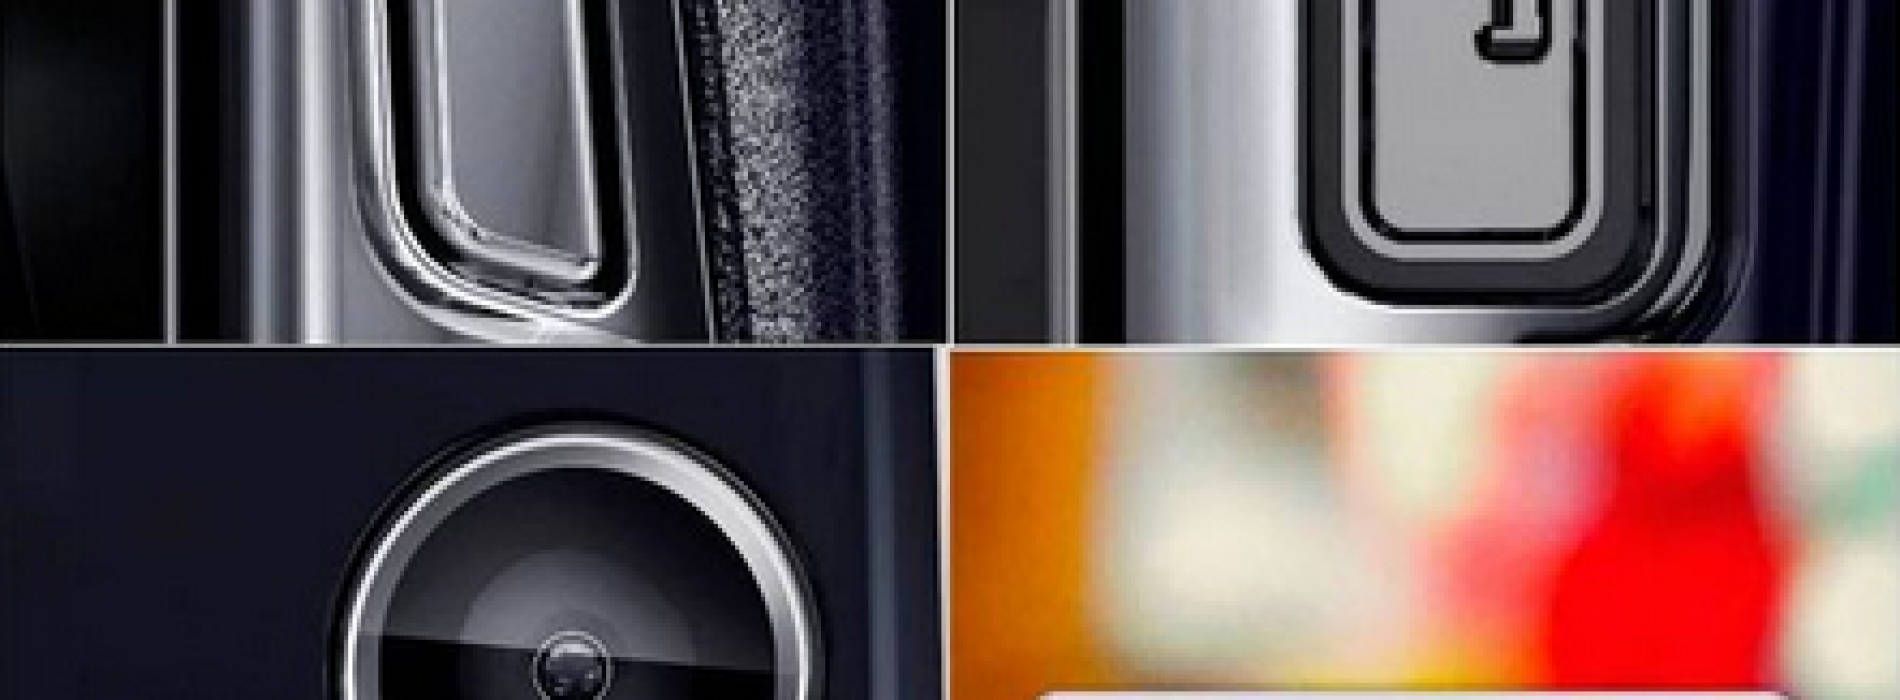 Sony Ericsson teases us with pending handset announcement